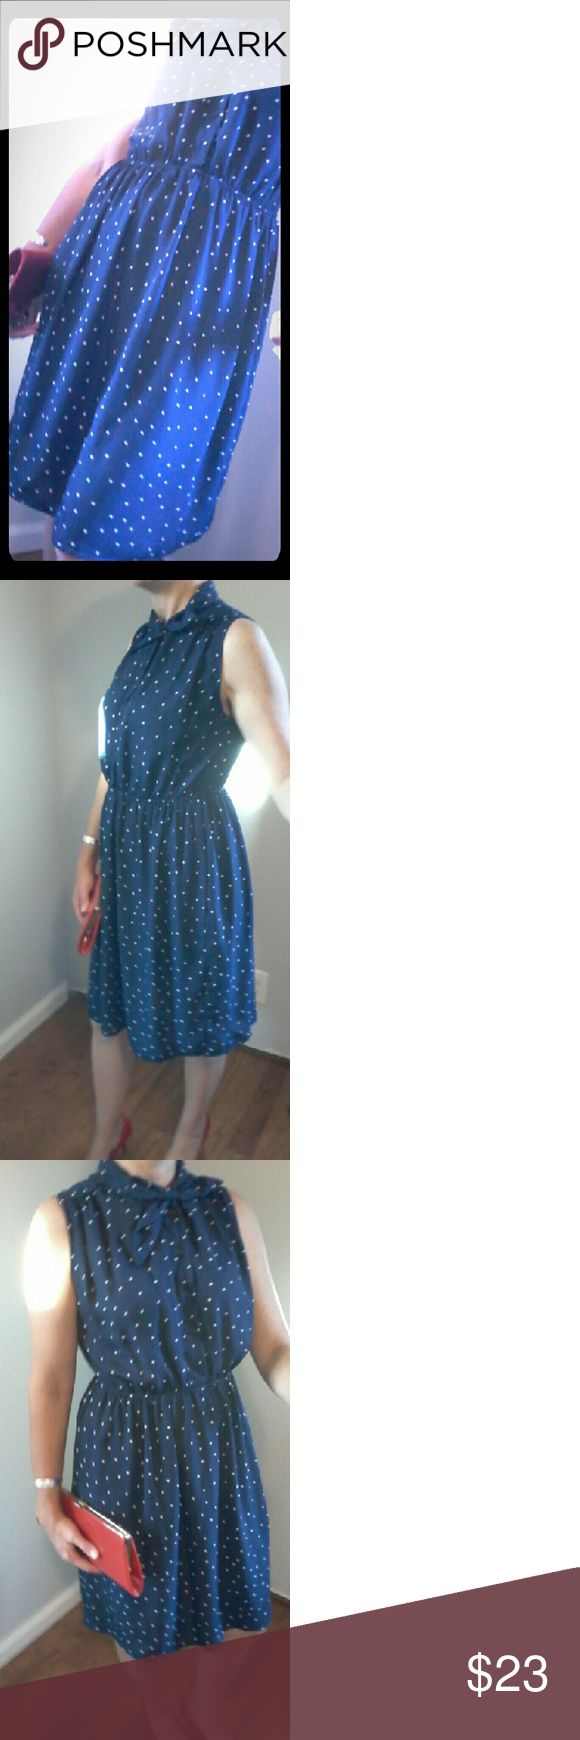 Holly Bracken navy blue polka dot dress Sleeve less and knee length. Under slip skirt hits at about mid thigh. Adorable classic neckline with a 1940's feel. Classic navy blue with white polka dots. Can be paired with cardigan for cooler weather. Was purchased in Atlanta Georgia's famous apparel mart. Worn about 5 times. Excellent condition. Size not mark but approximately a 6 with room to spare for a bigger bust and has a stretch waist. Smoke free home. Offers considered. Holly Bracken…